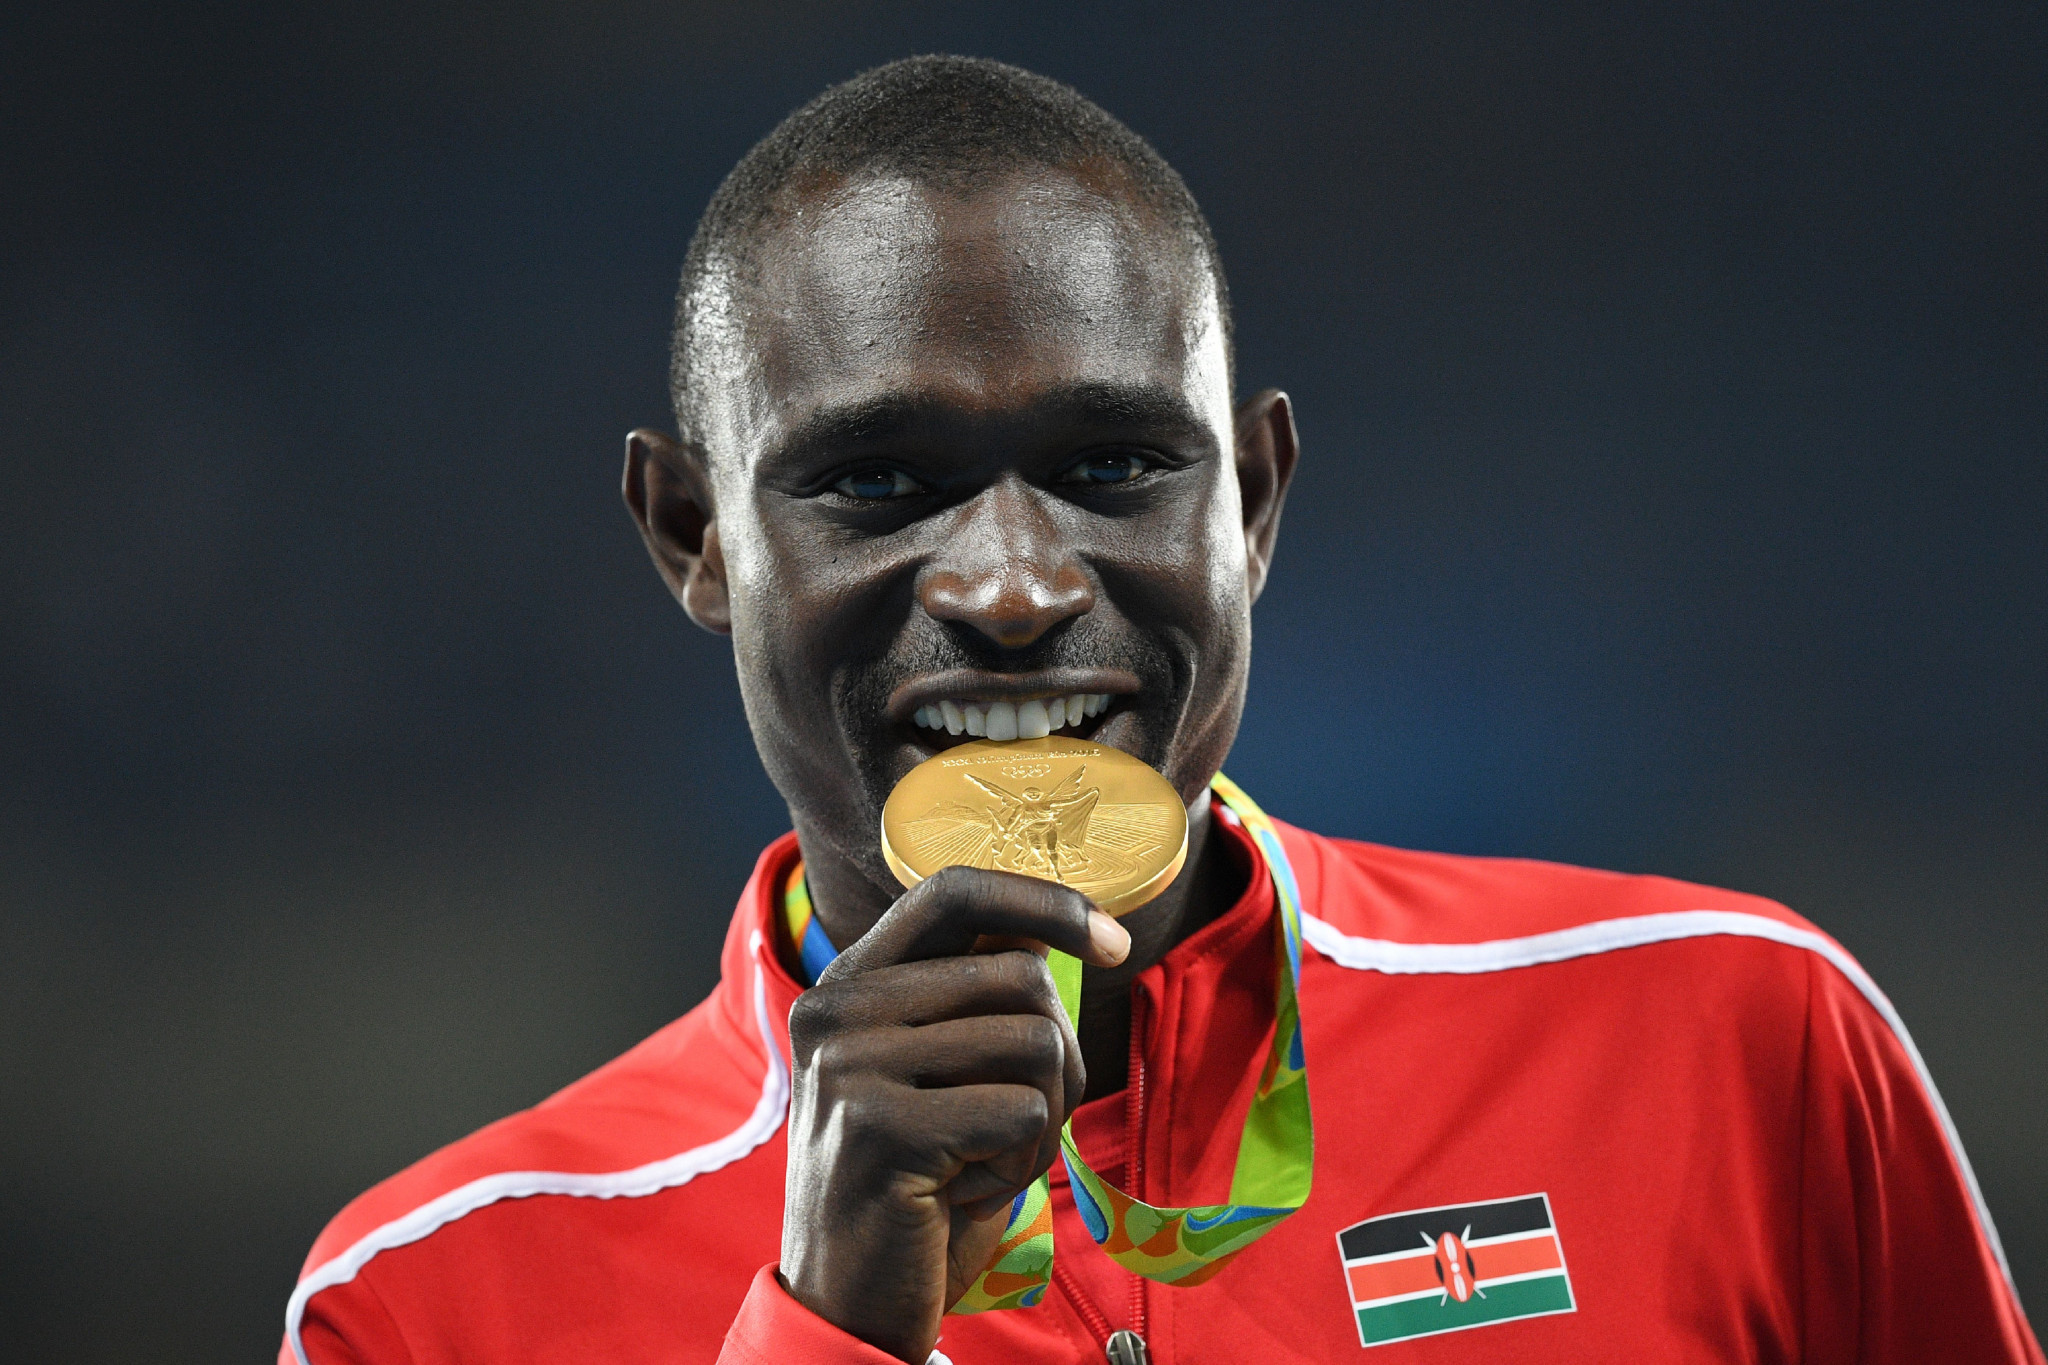 David Rudisha will hope to secure a third Olympic title next year at Tokyo 2020 ©Getty Images